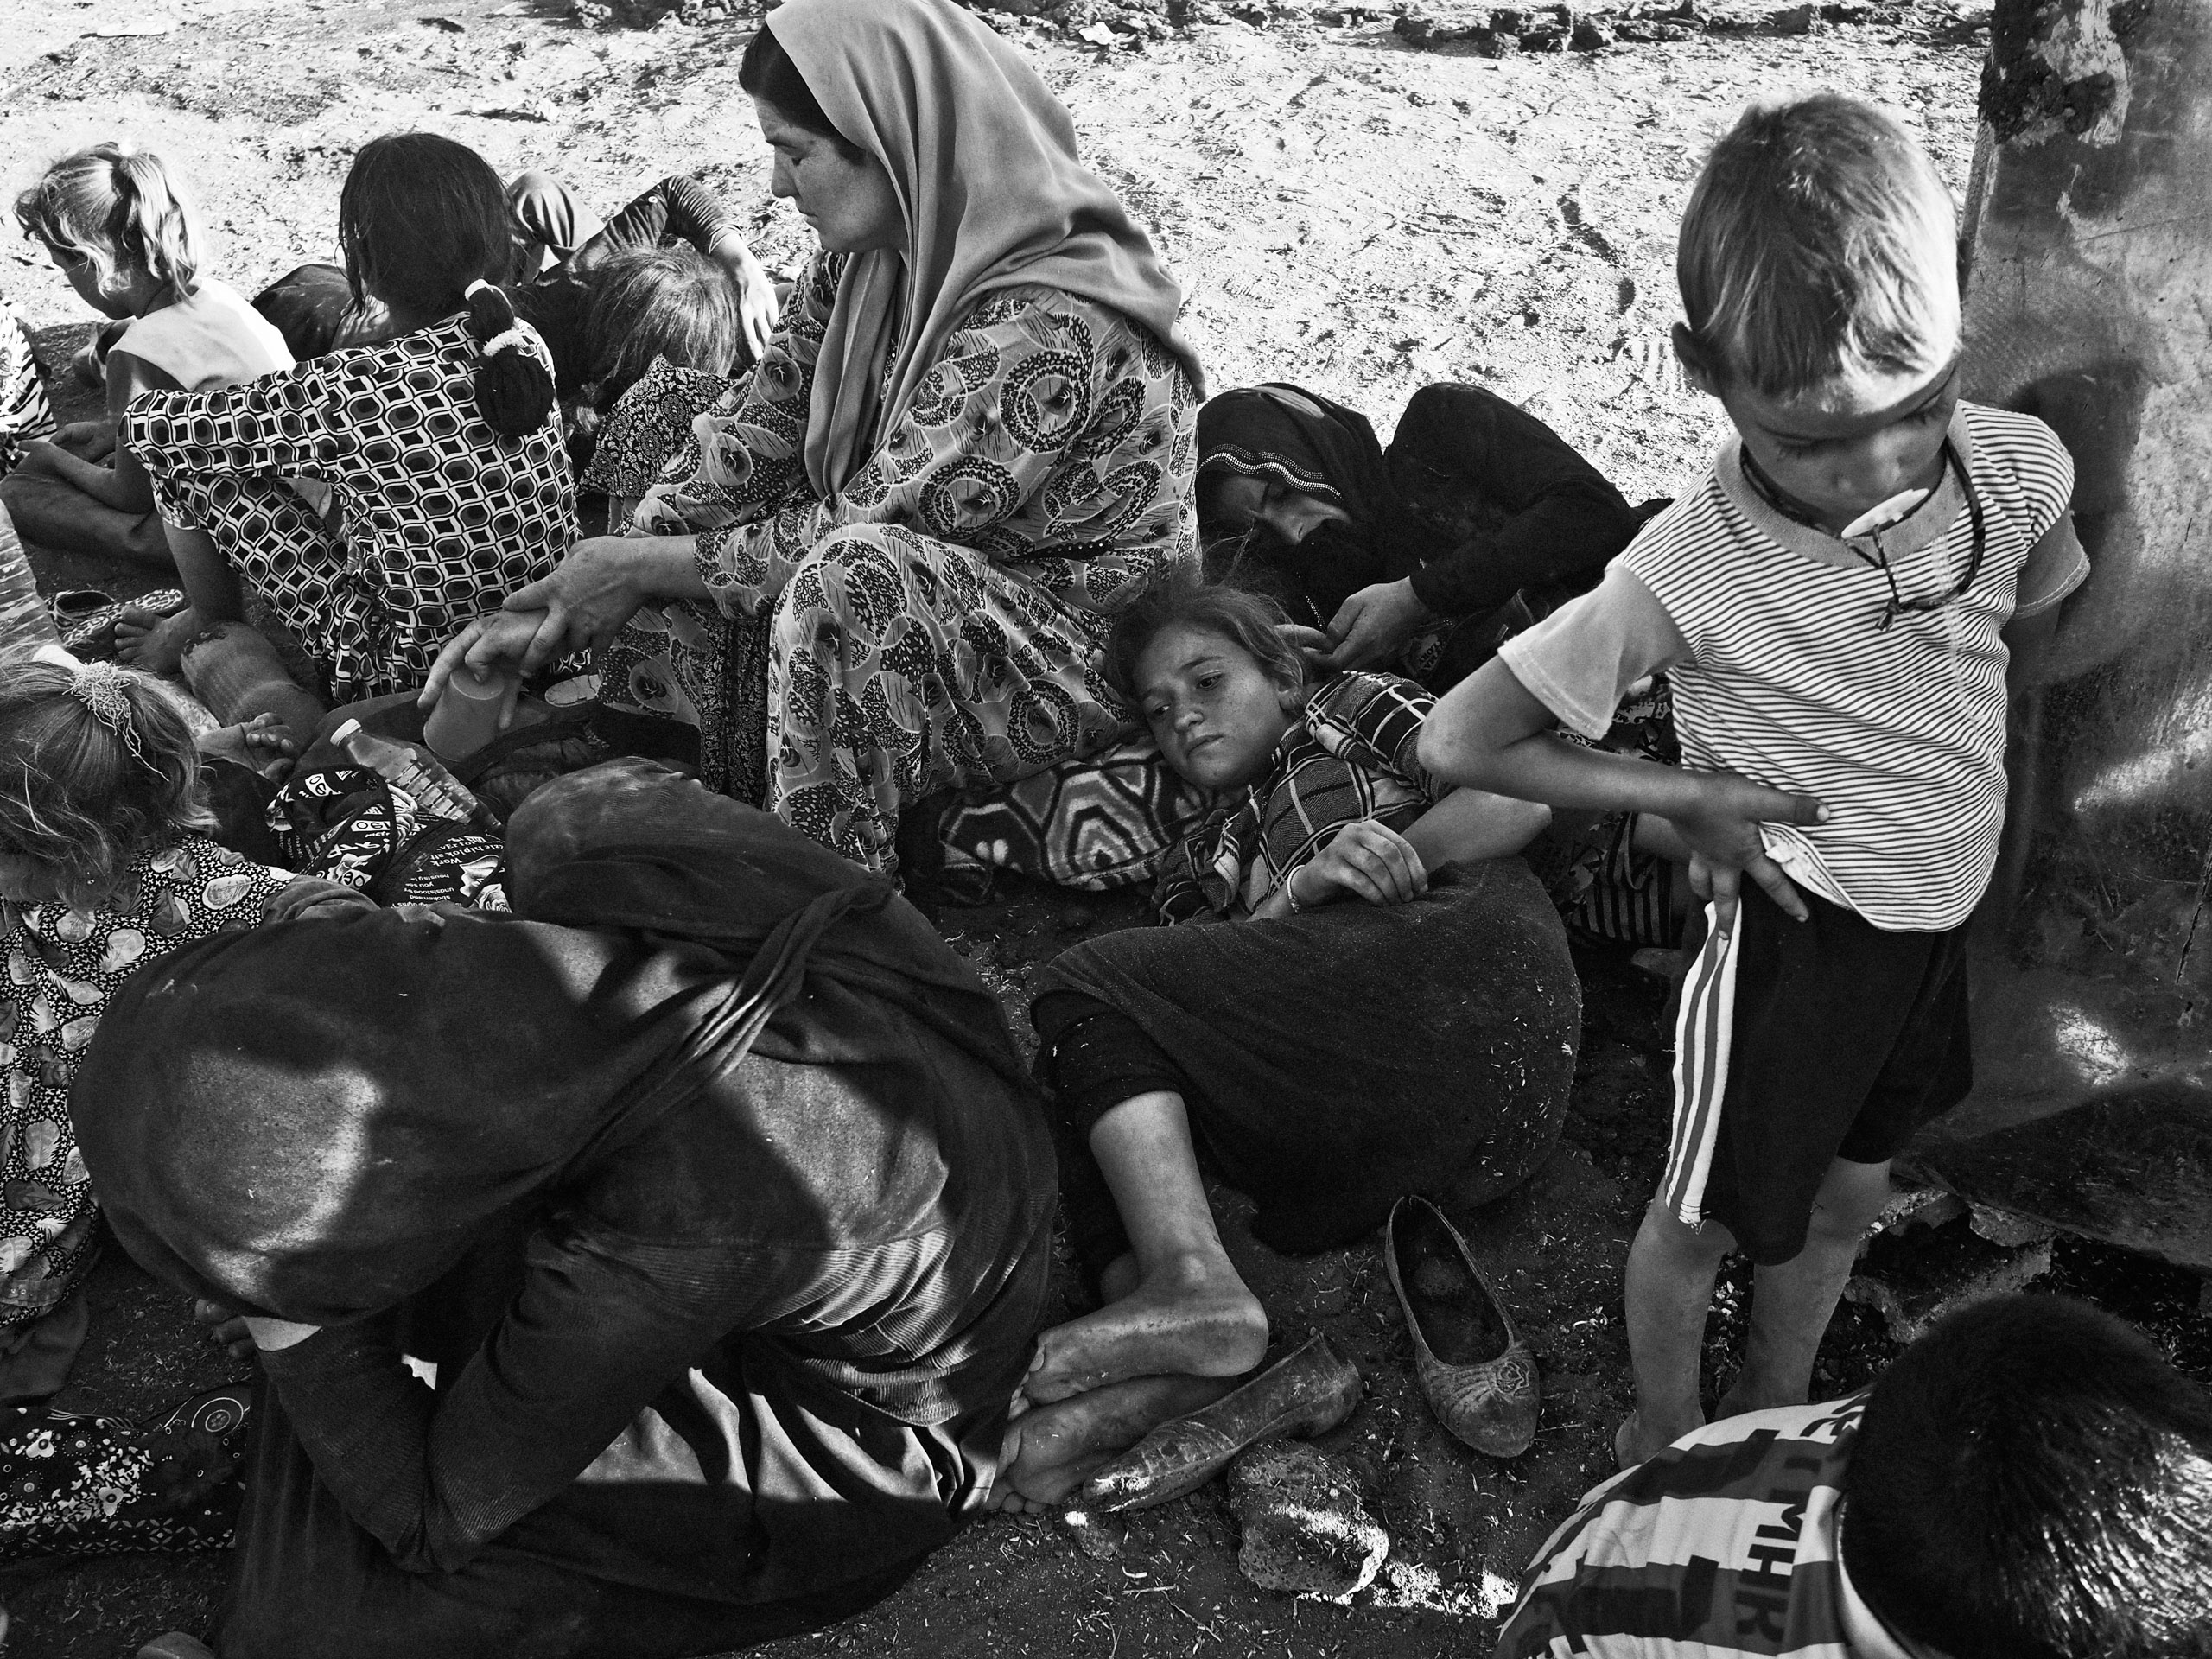 Yezidi women and children from Sinjar, Iraq, rest at a makeshift camp on the outskirts of Derek, a Kurdish-controlled town in Syria that is located at the foot of the Sinjar Mountains. Derek, Syria. Aug. 10, 2014.